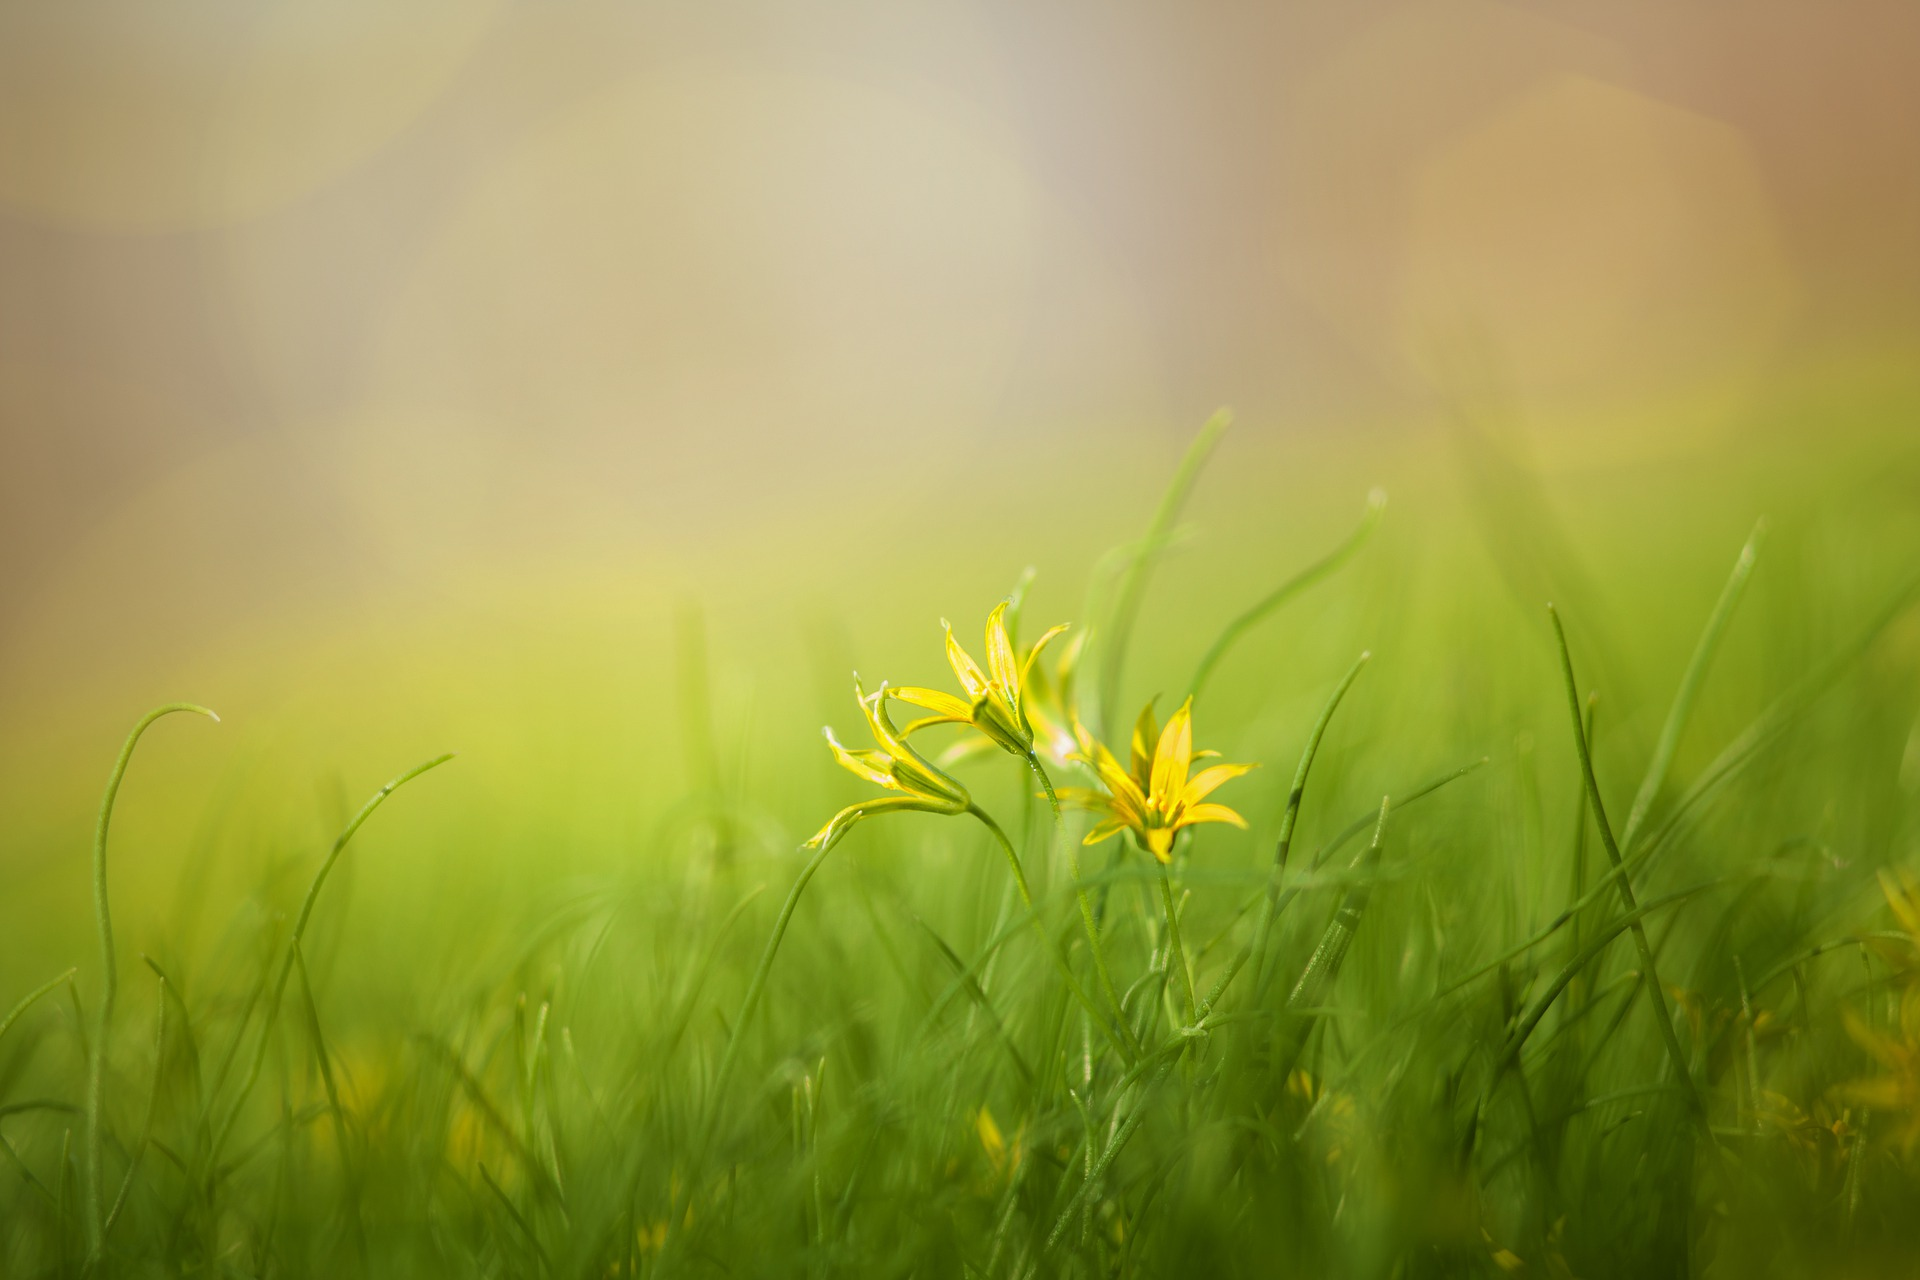 Green grass and a few fine yellow flowers in a summer glowing field